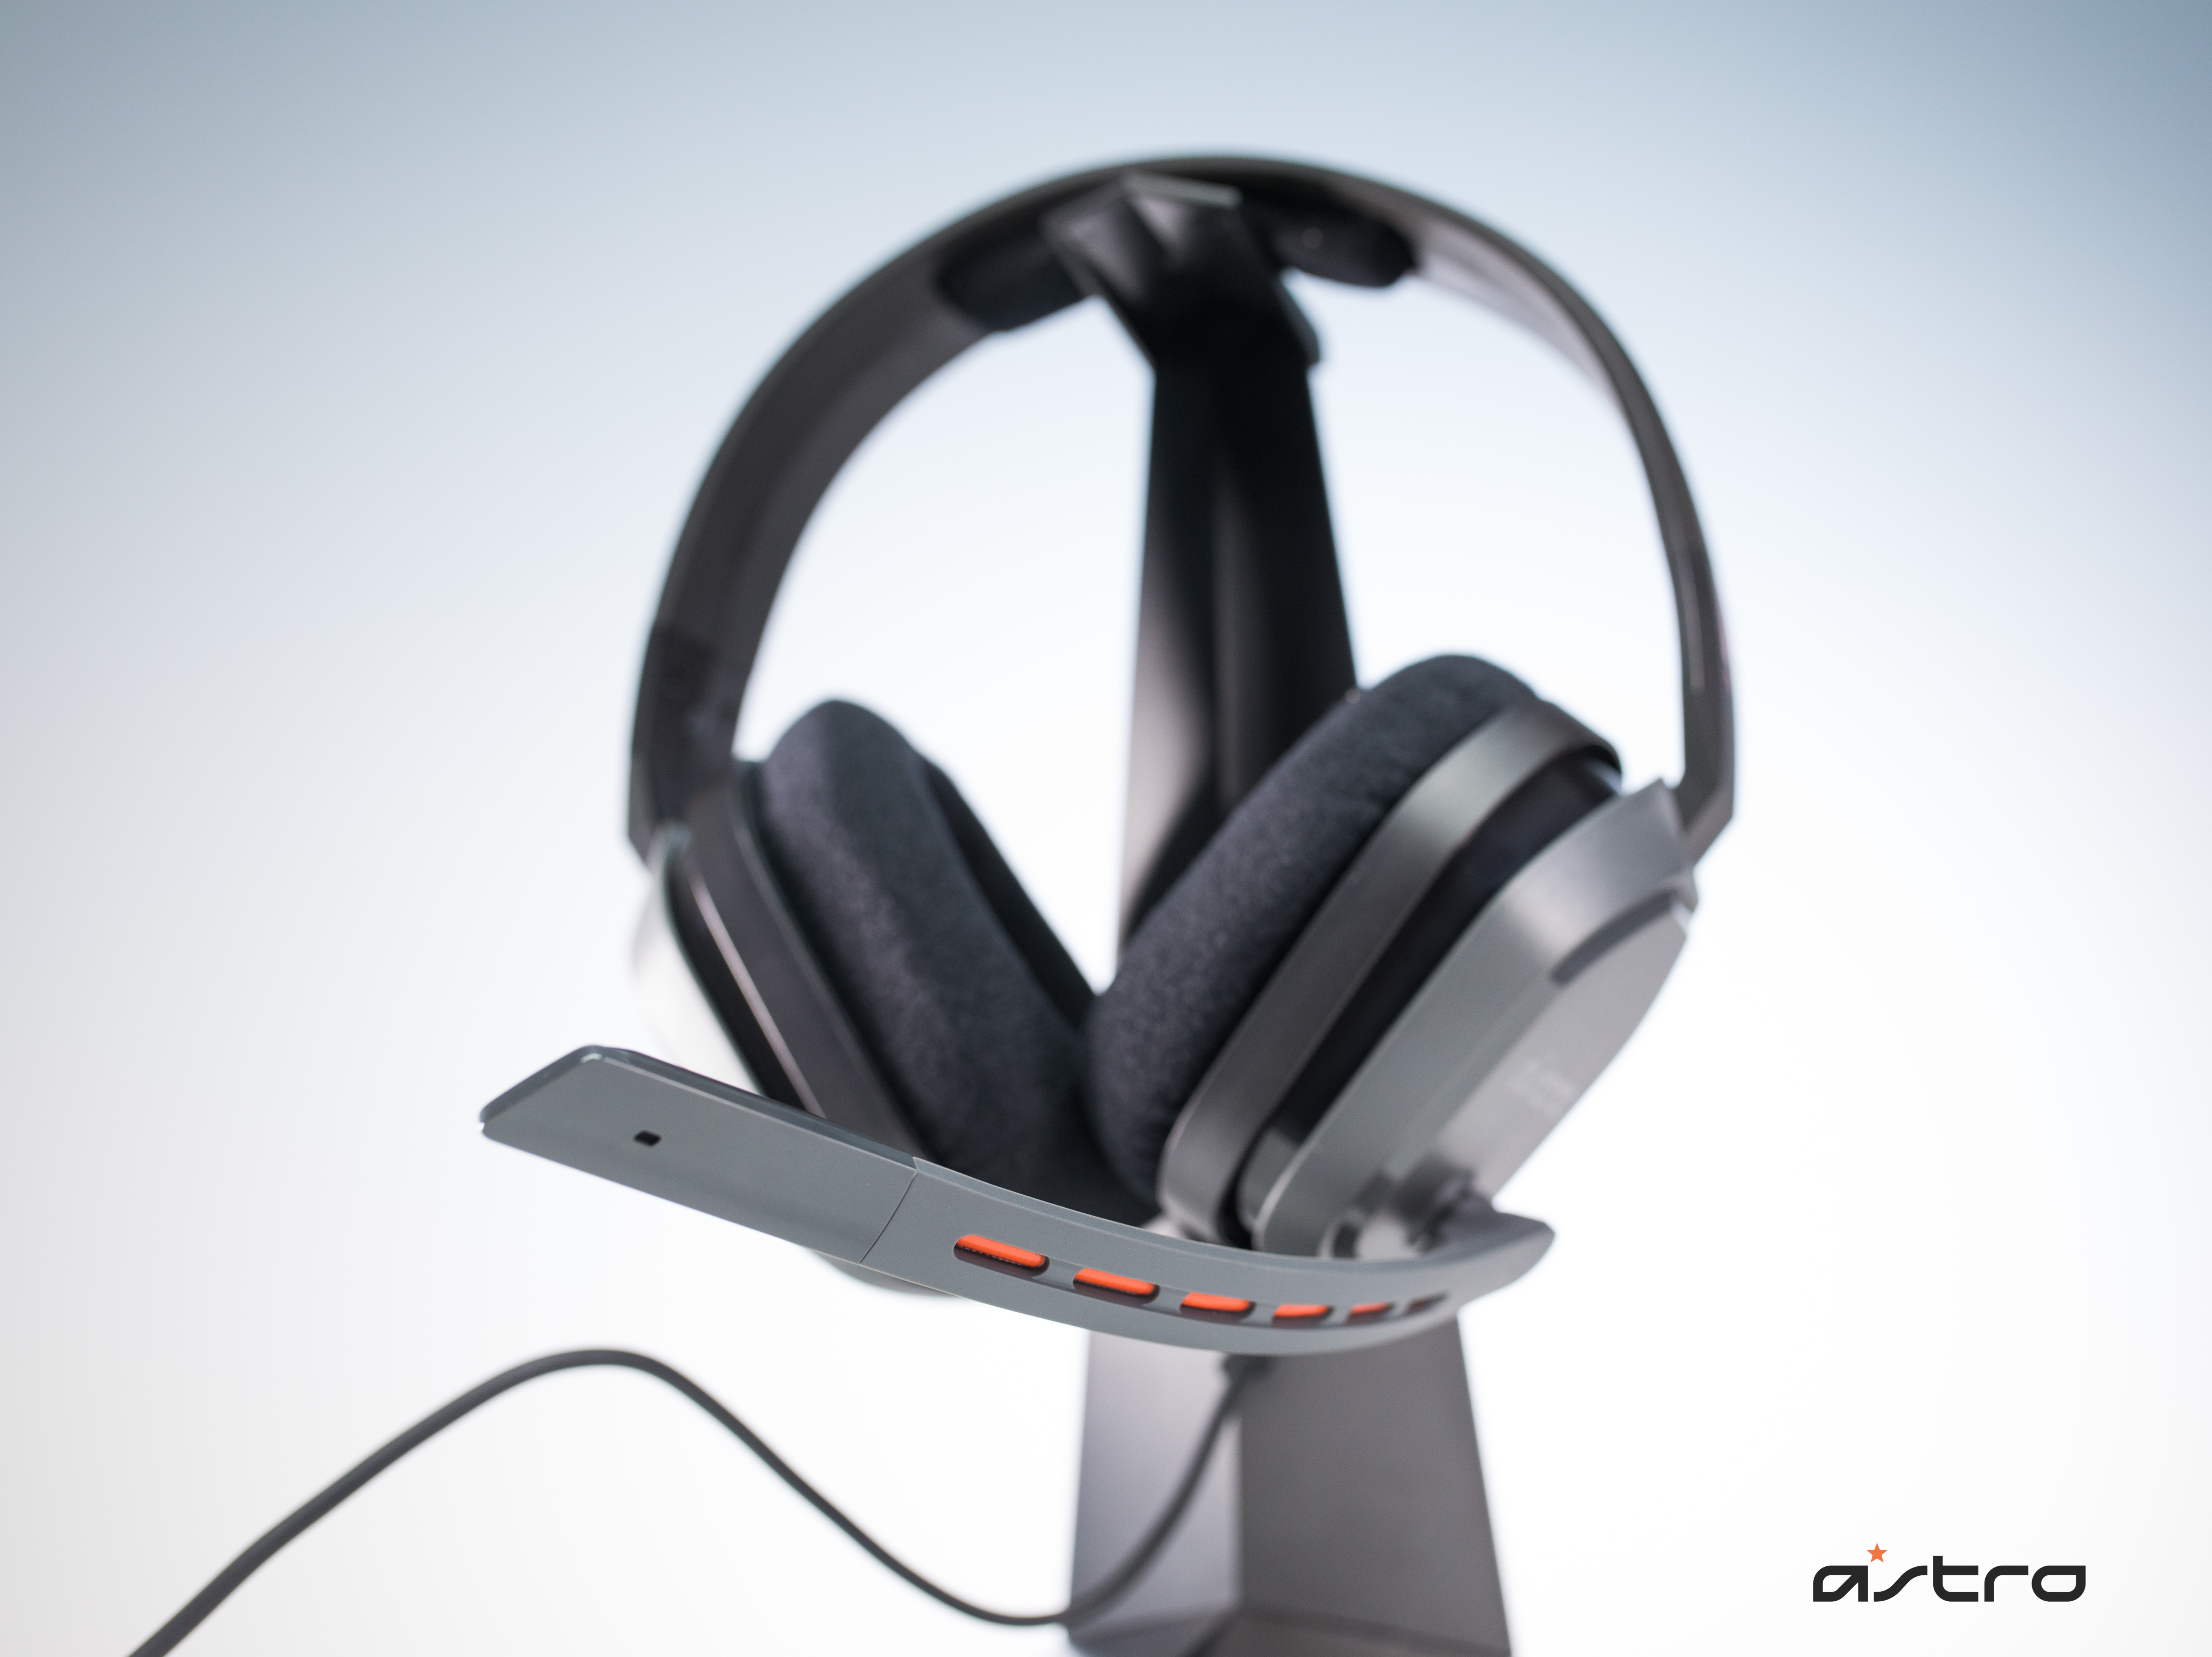 astro-gaming-a10-review-11